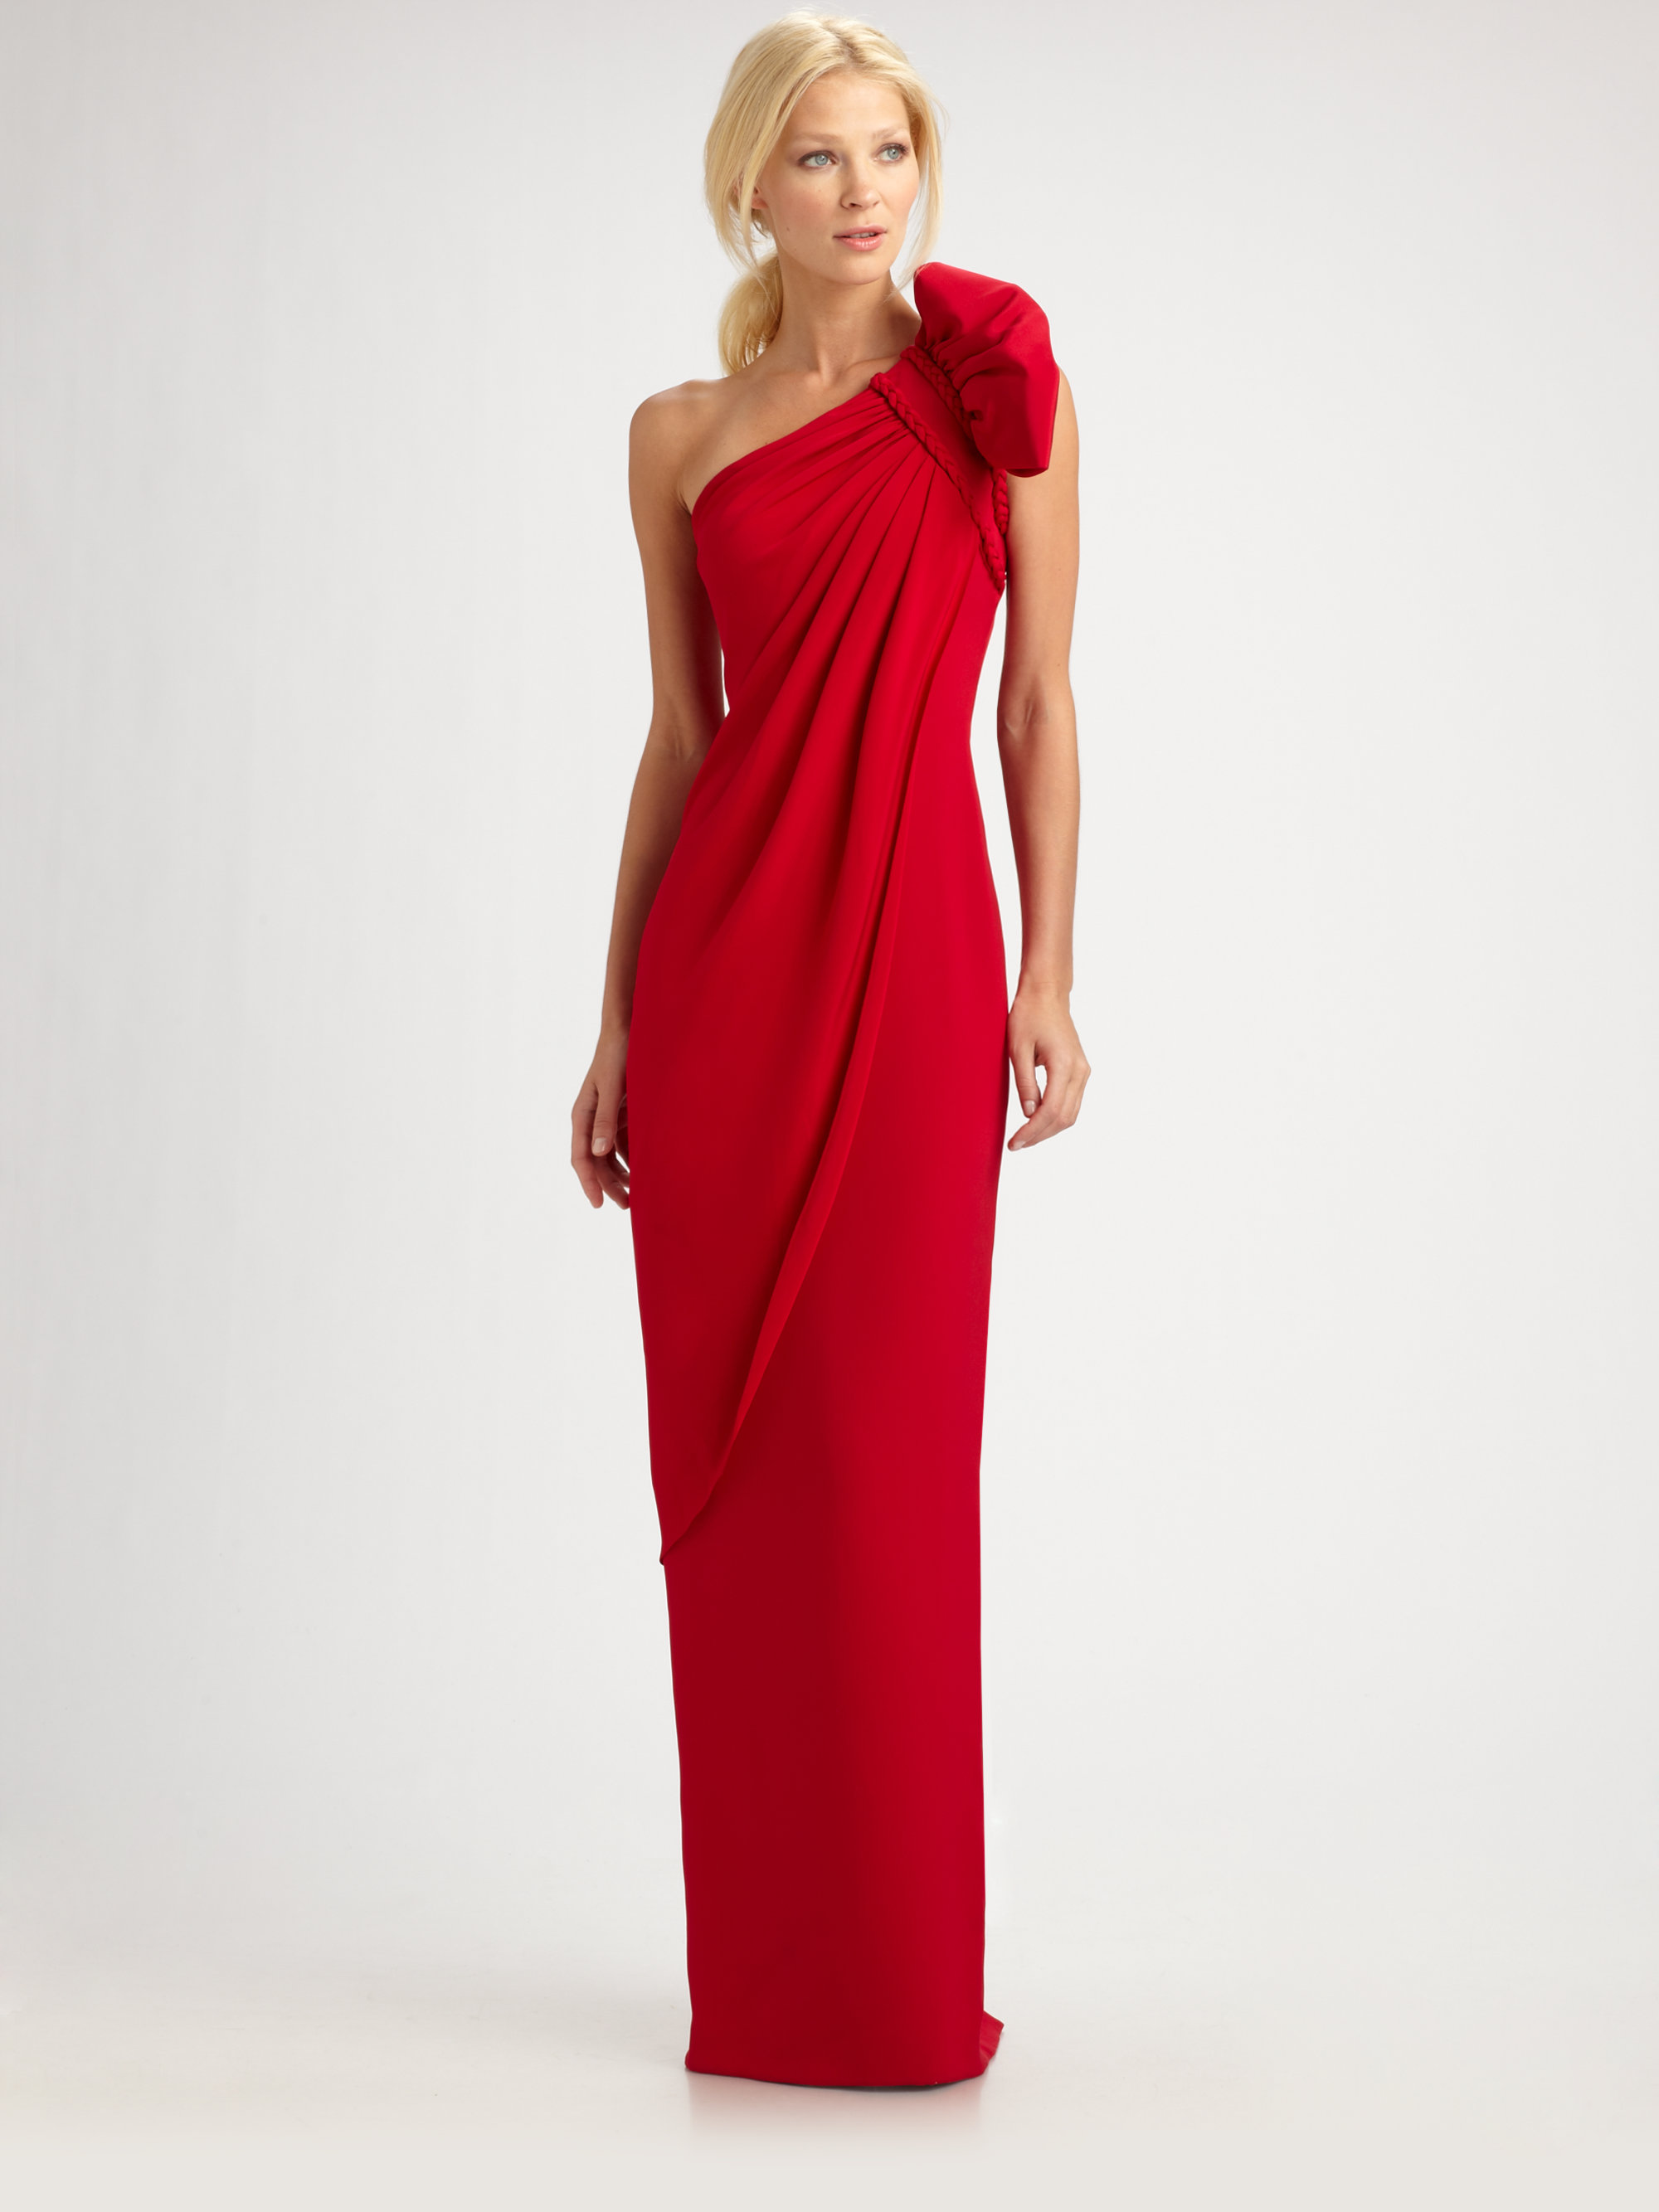 aa28b10f07 Marchesa notte Draped Silk Crepe One Shoulder Gown in Red - Lyst